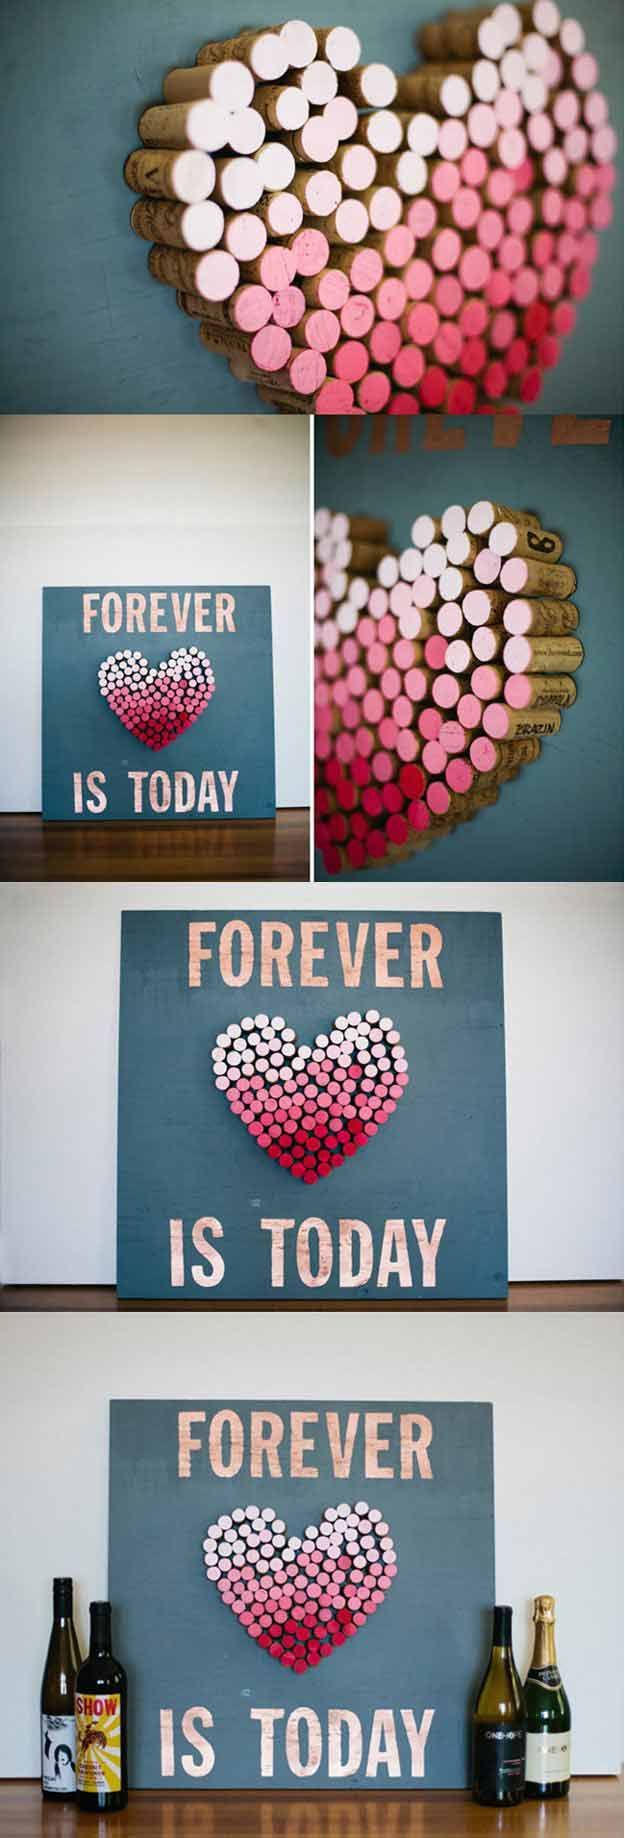 Diy projects for bedroom pinterest projects for teensu bedrooms  pinterest  cork art cork crafts and